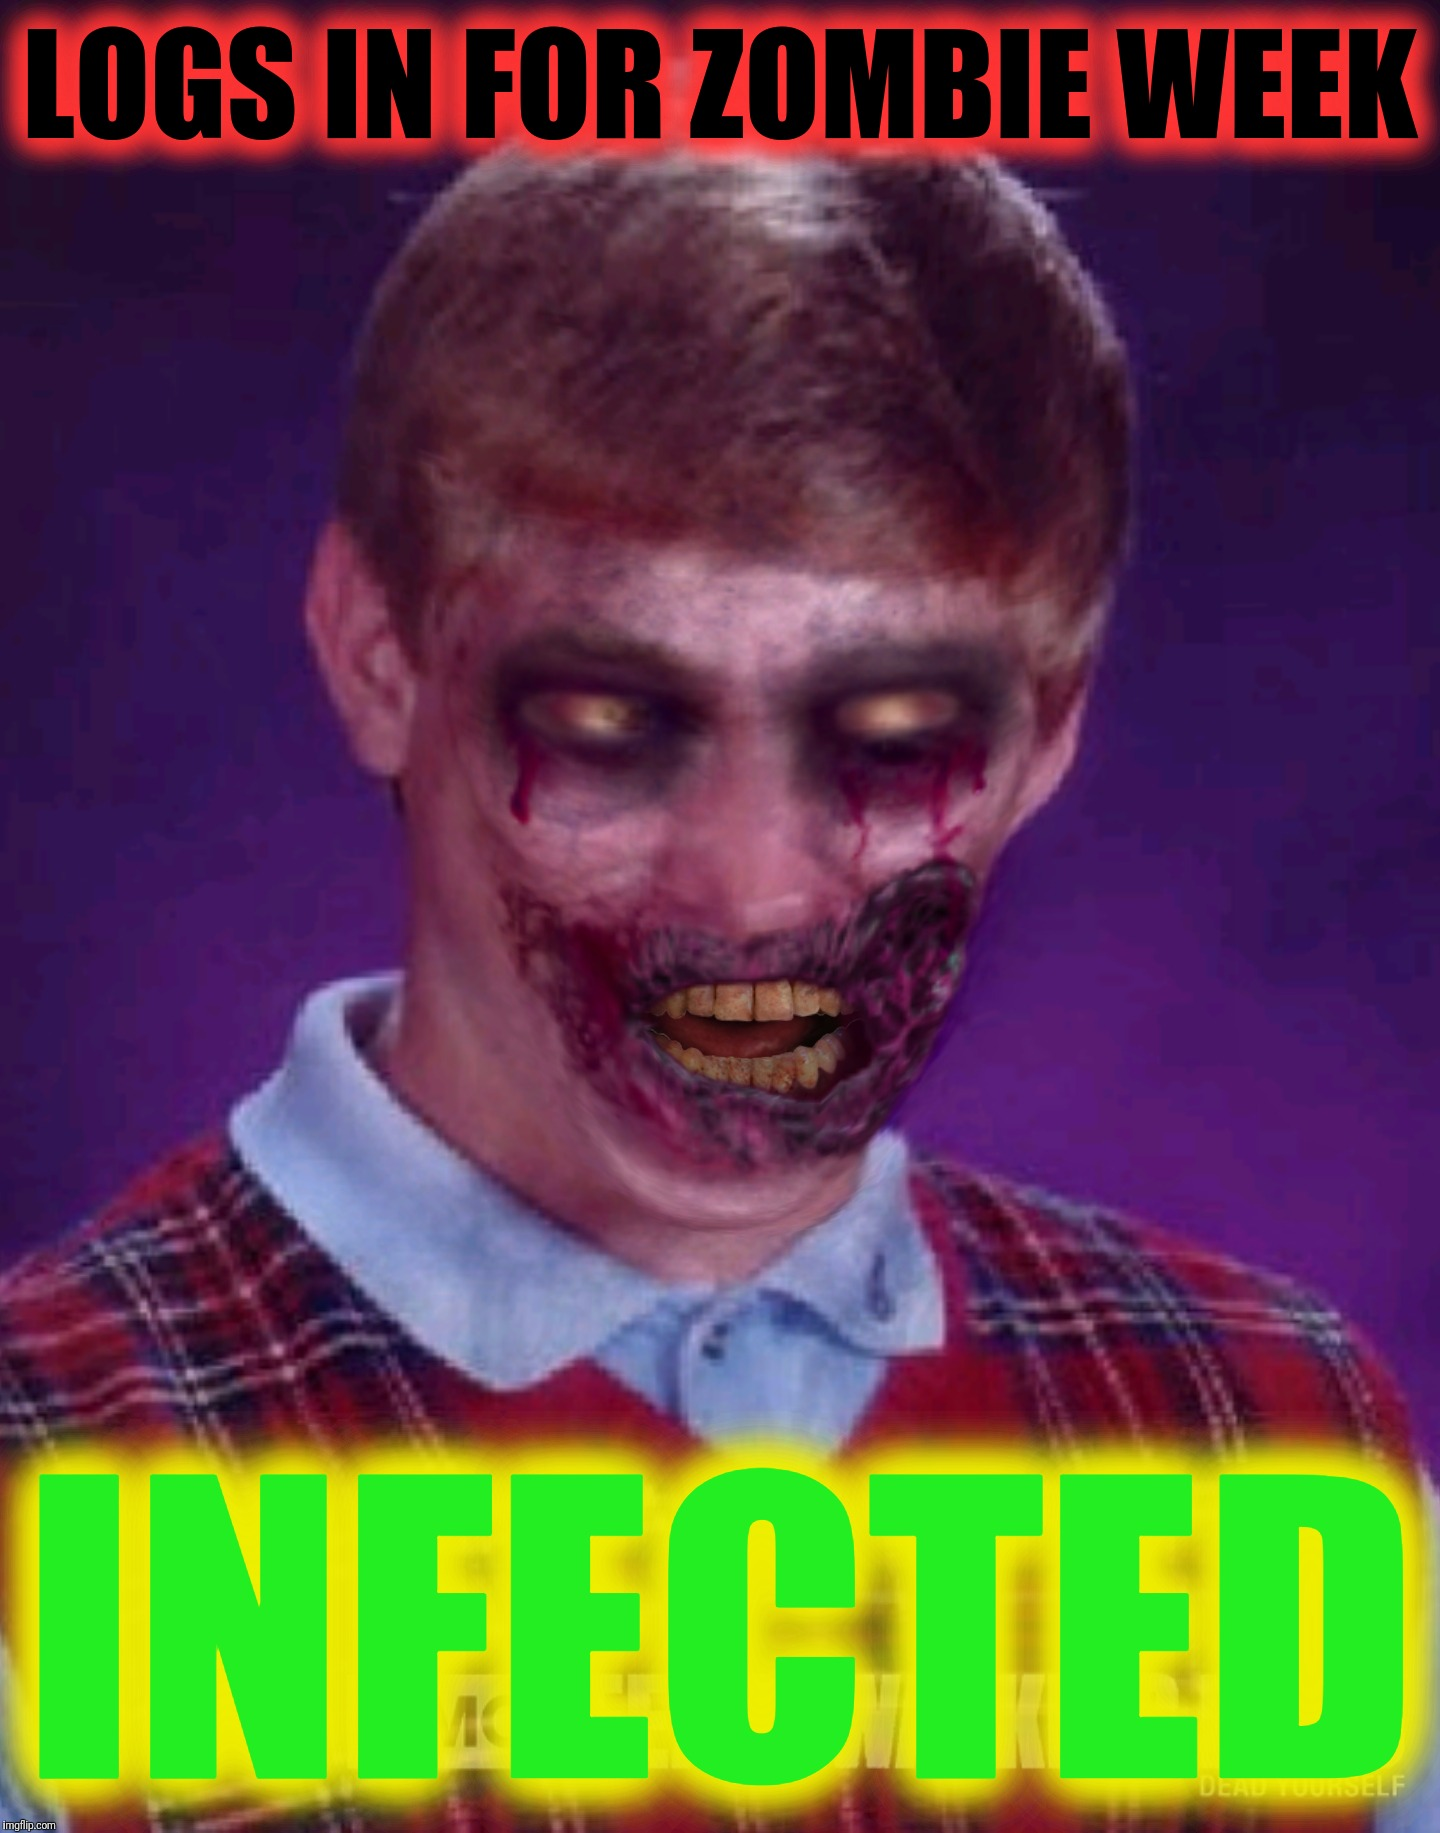 LOGS IN FOR ZOMBIE WEEK INFECTED | made w/ Imgflip meme maker